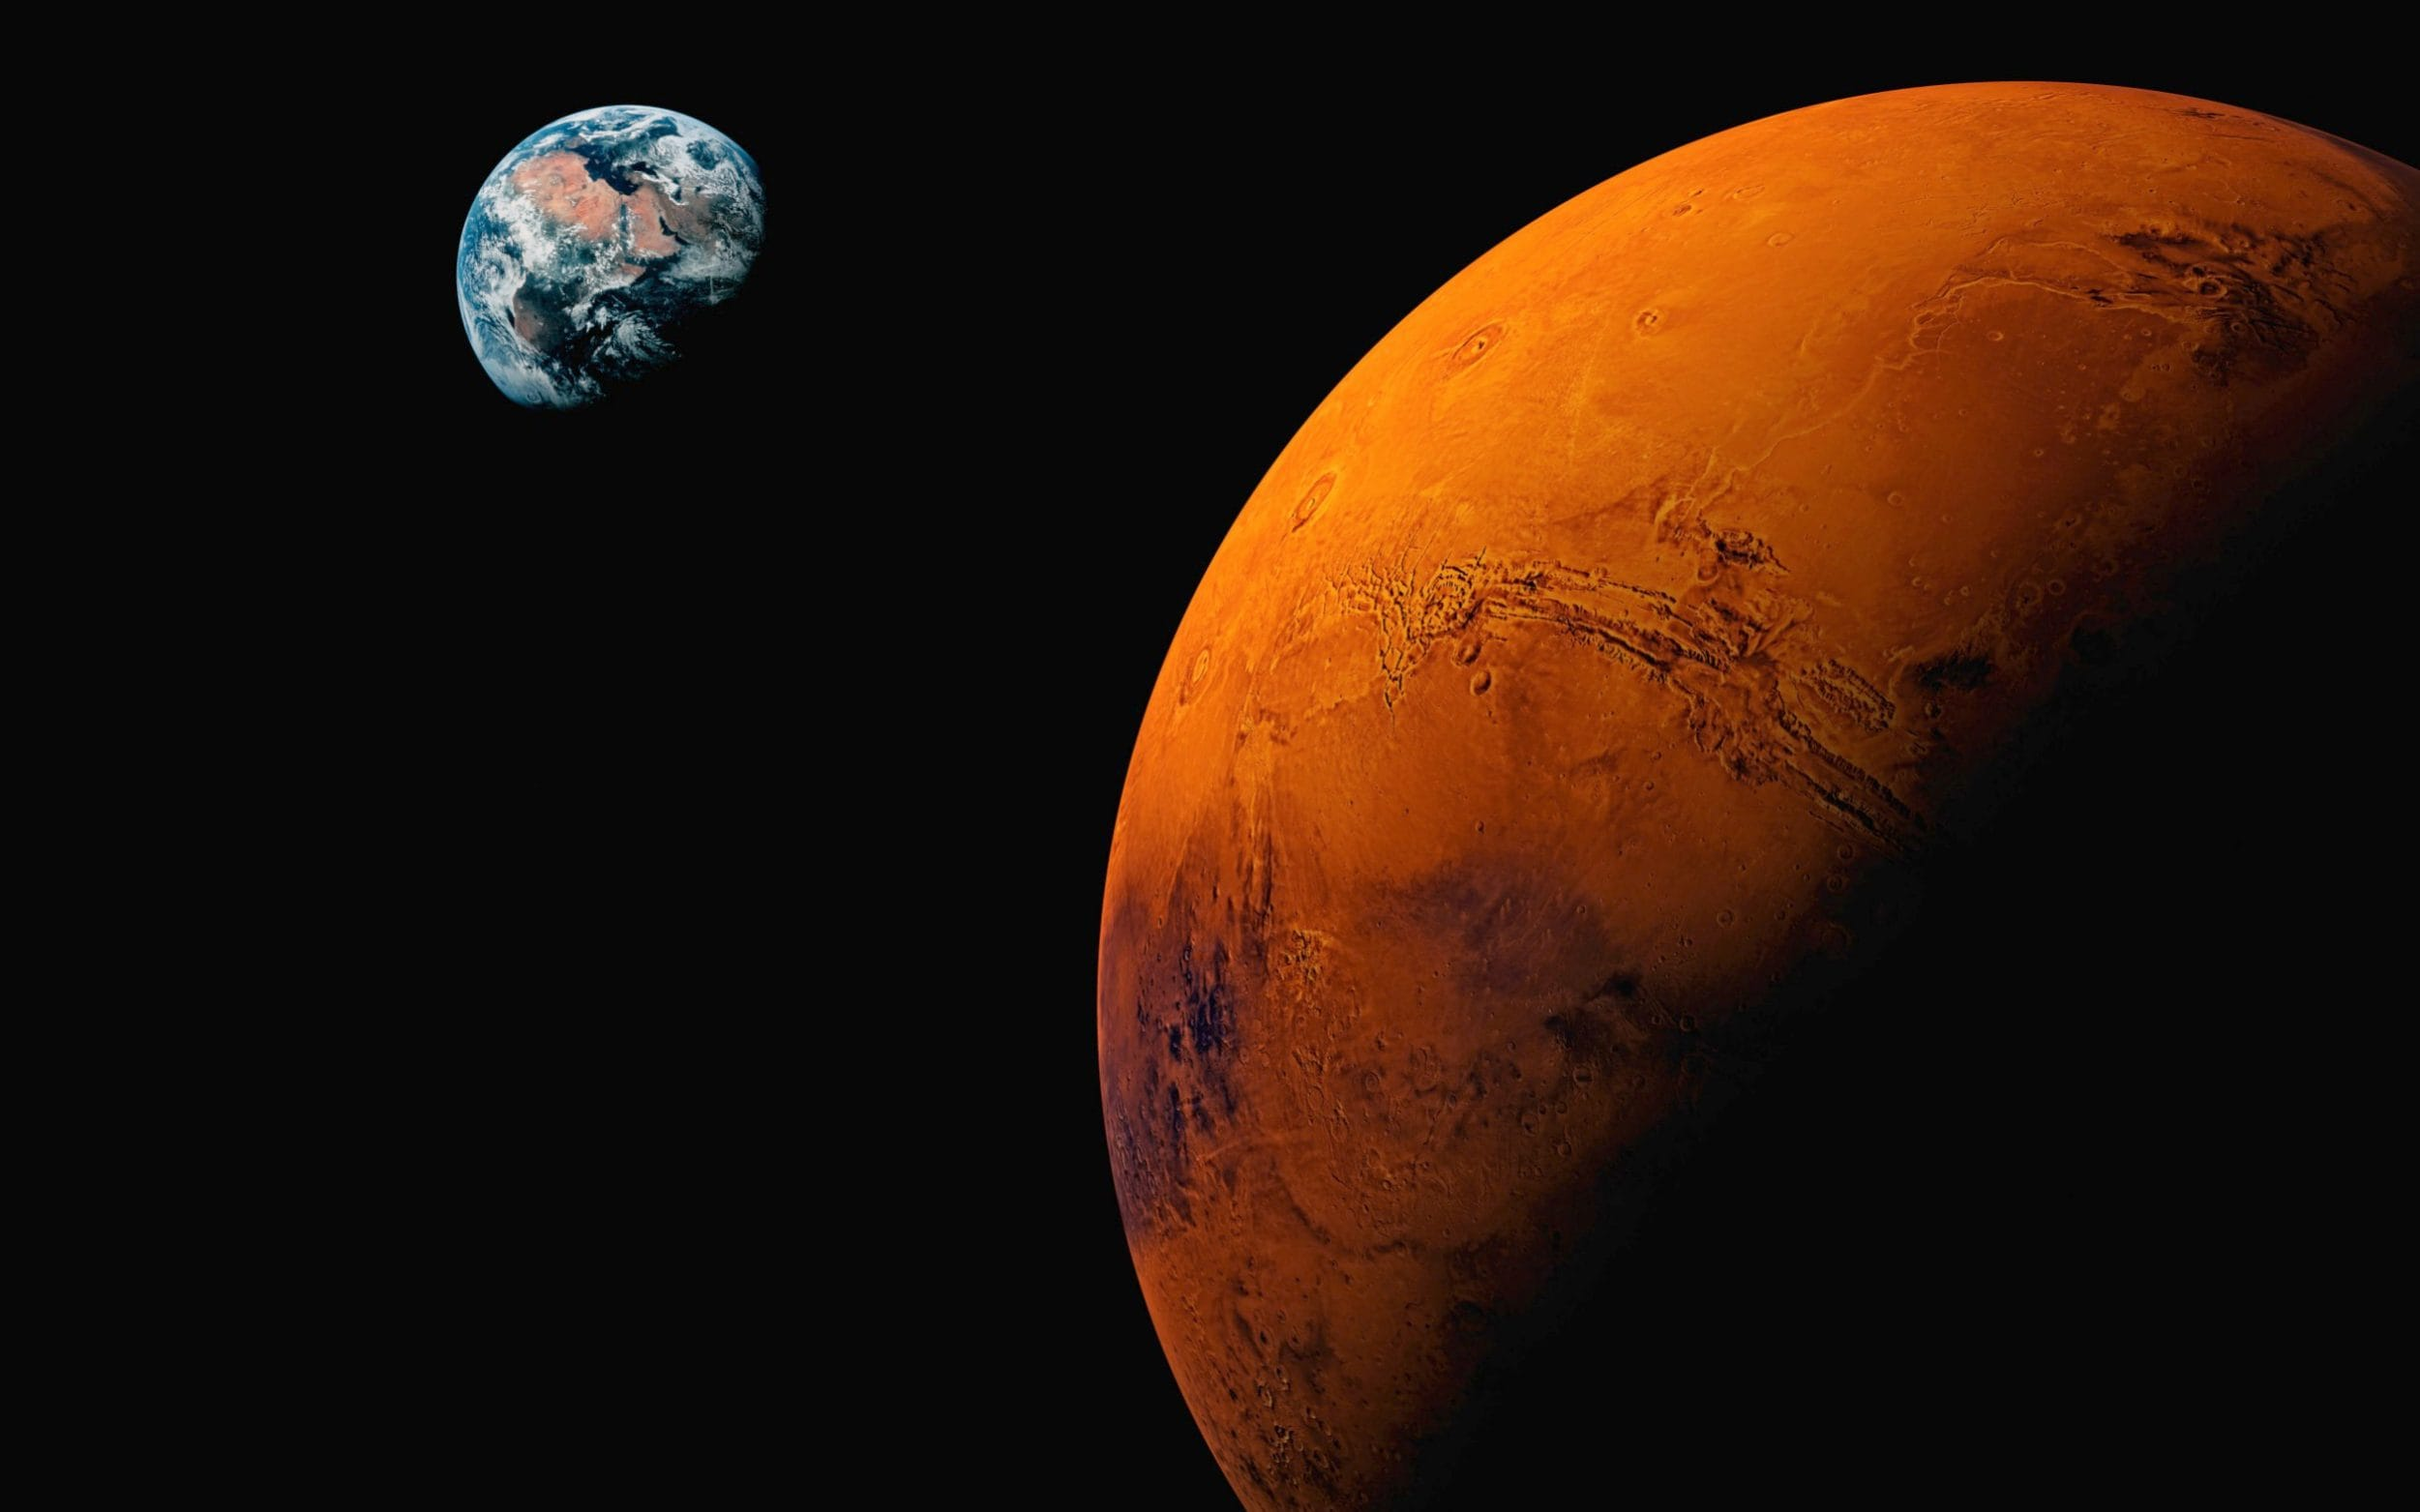 Iss Wallpaper Hd Scientists Edge Closer To Solving Mystery Of Life On Mars